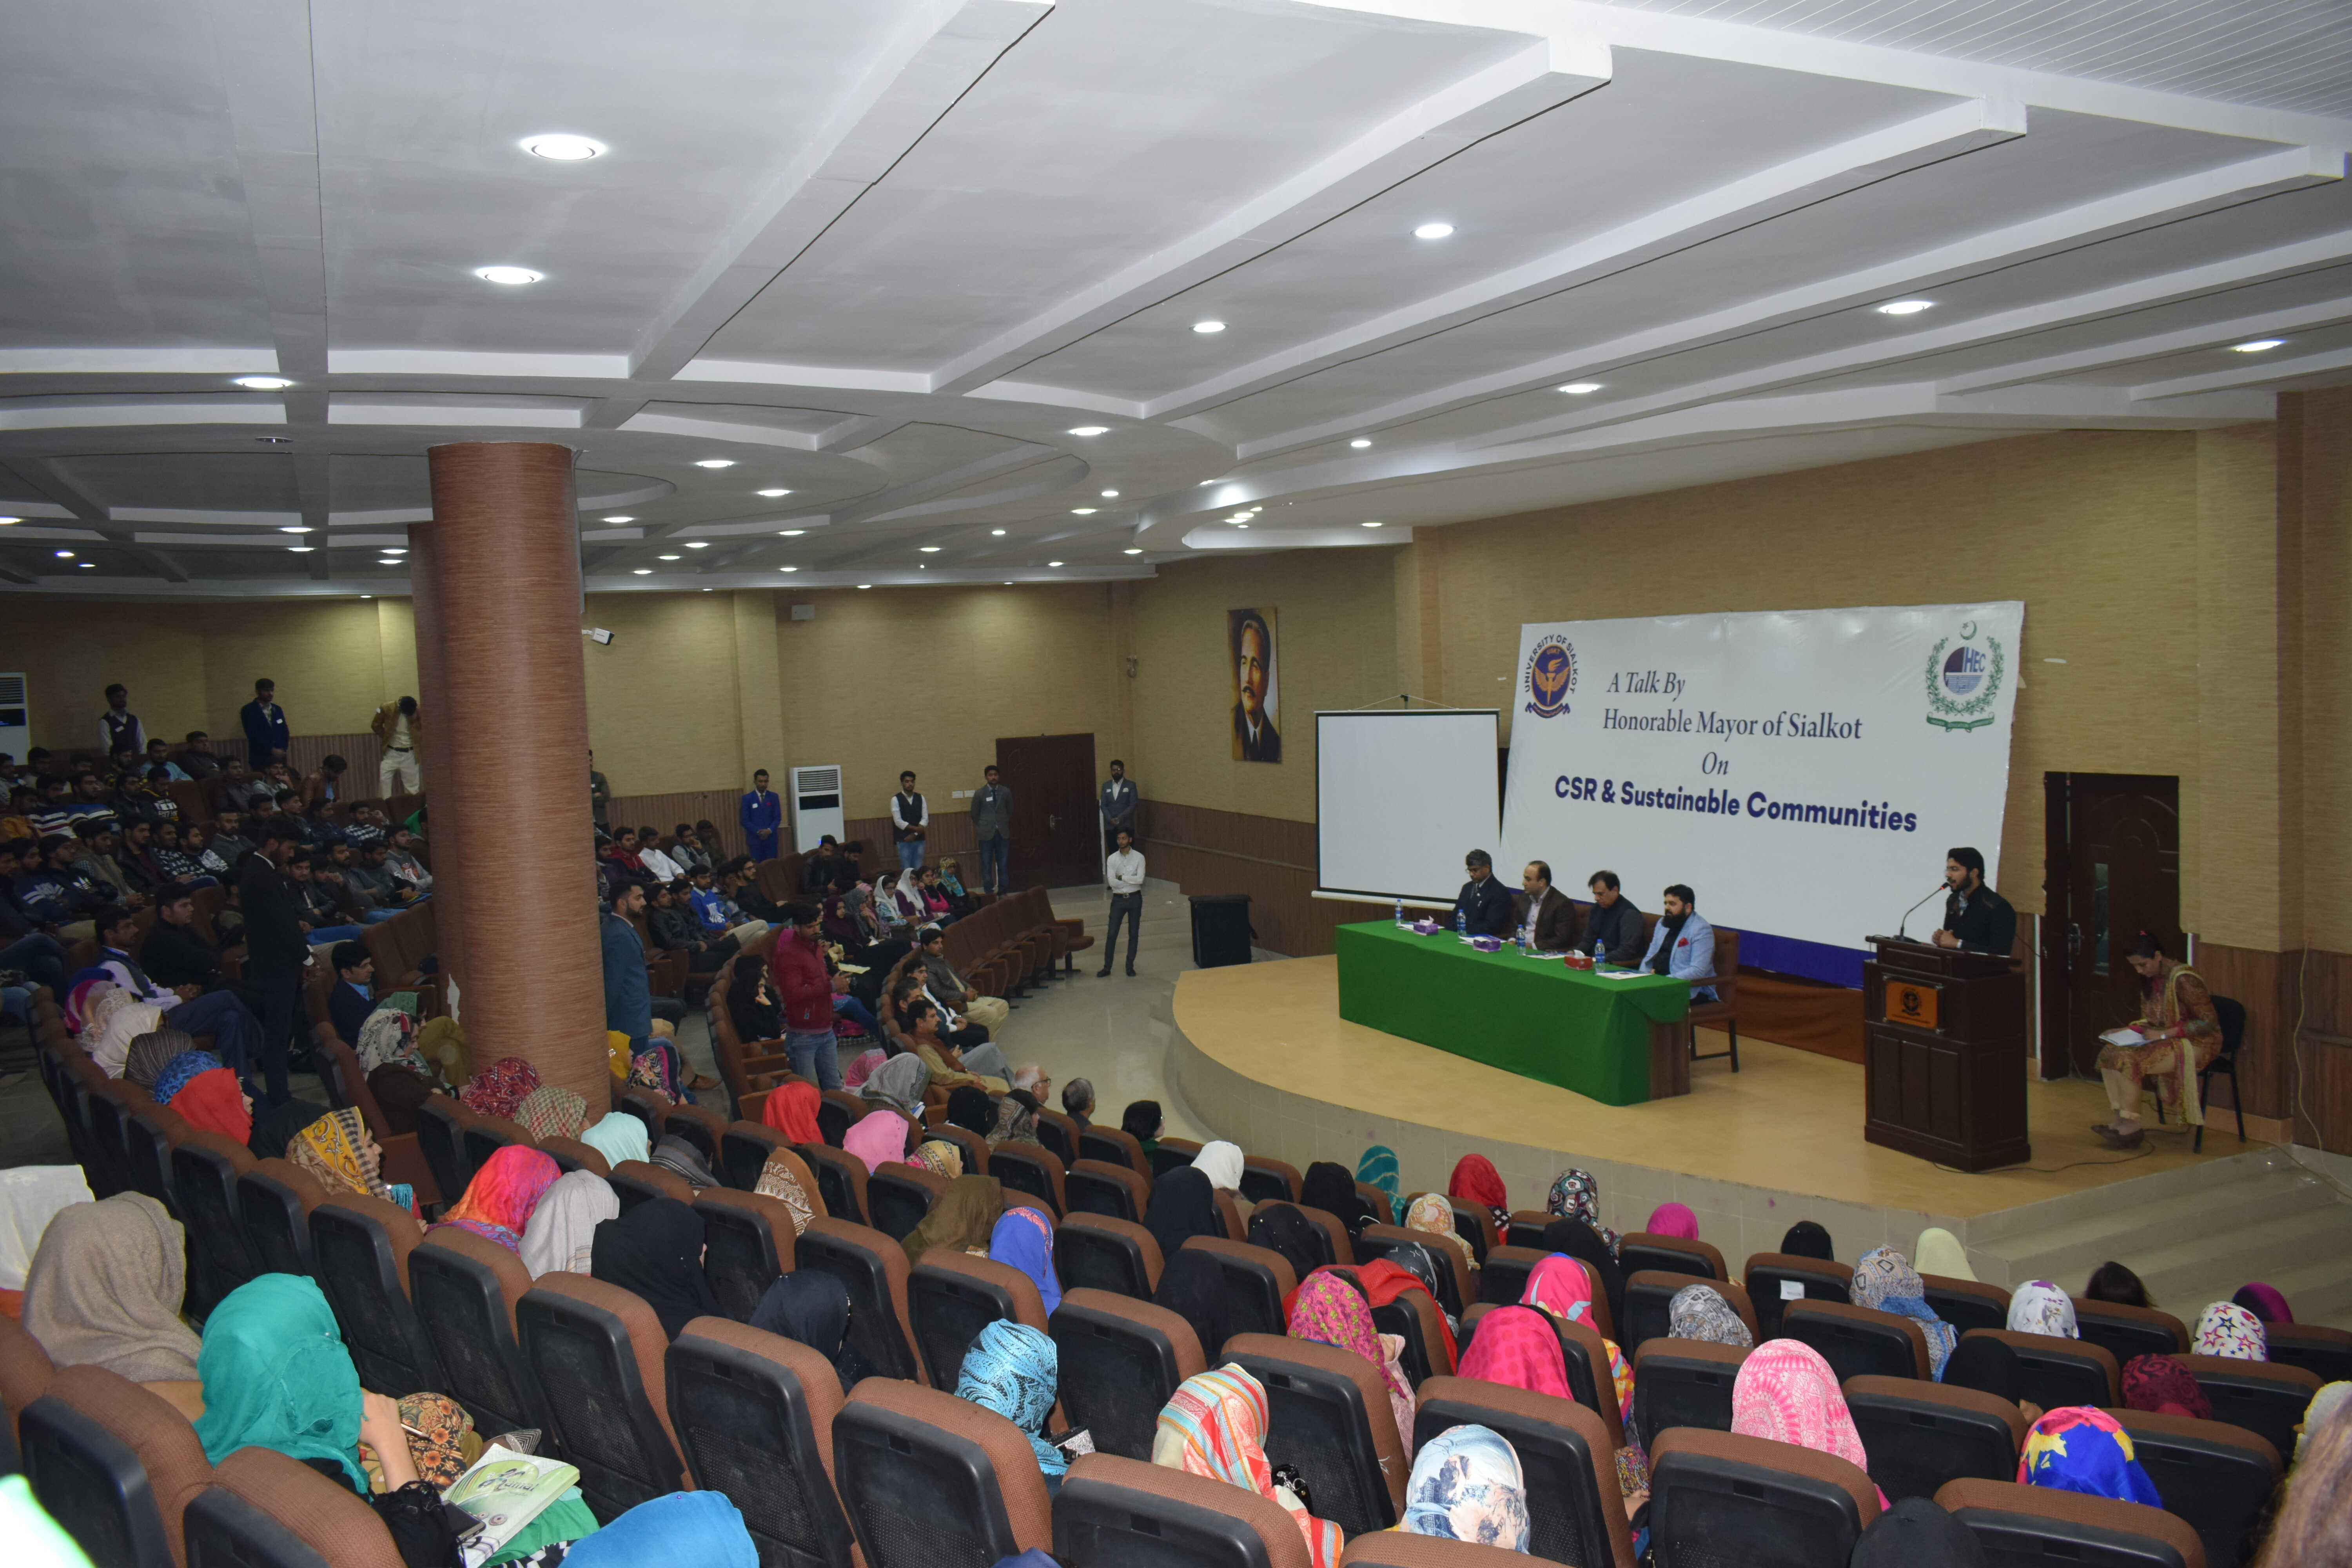 A Talk by honorable Mayor city of Sialkot Mr. Tauheed Akhter Chaudhry, on CRS & Sustainable Communities organized by University of Sialkot. Mayor Sialkot addressed the faculty and students about how Universities and local governments walk side by side for attaining sustainable development in any community.